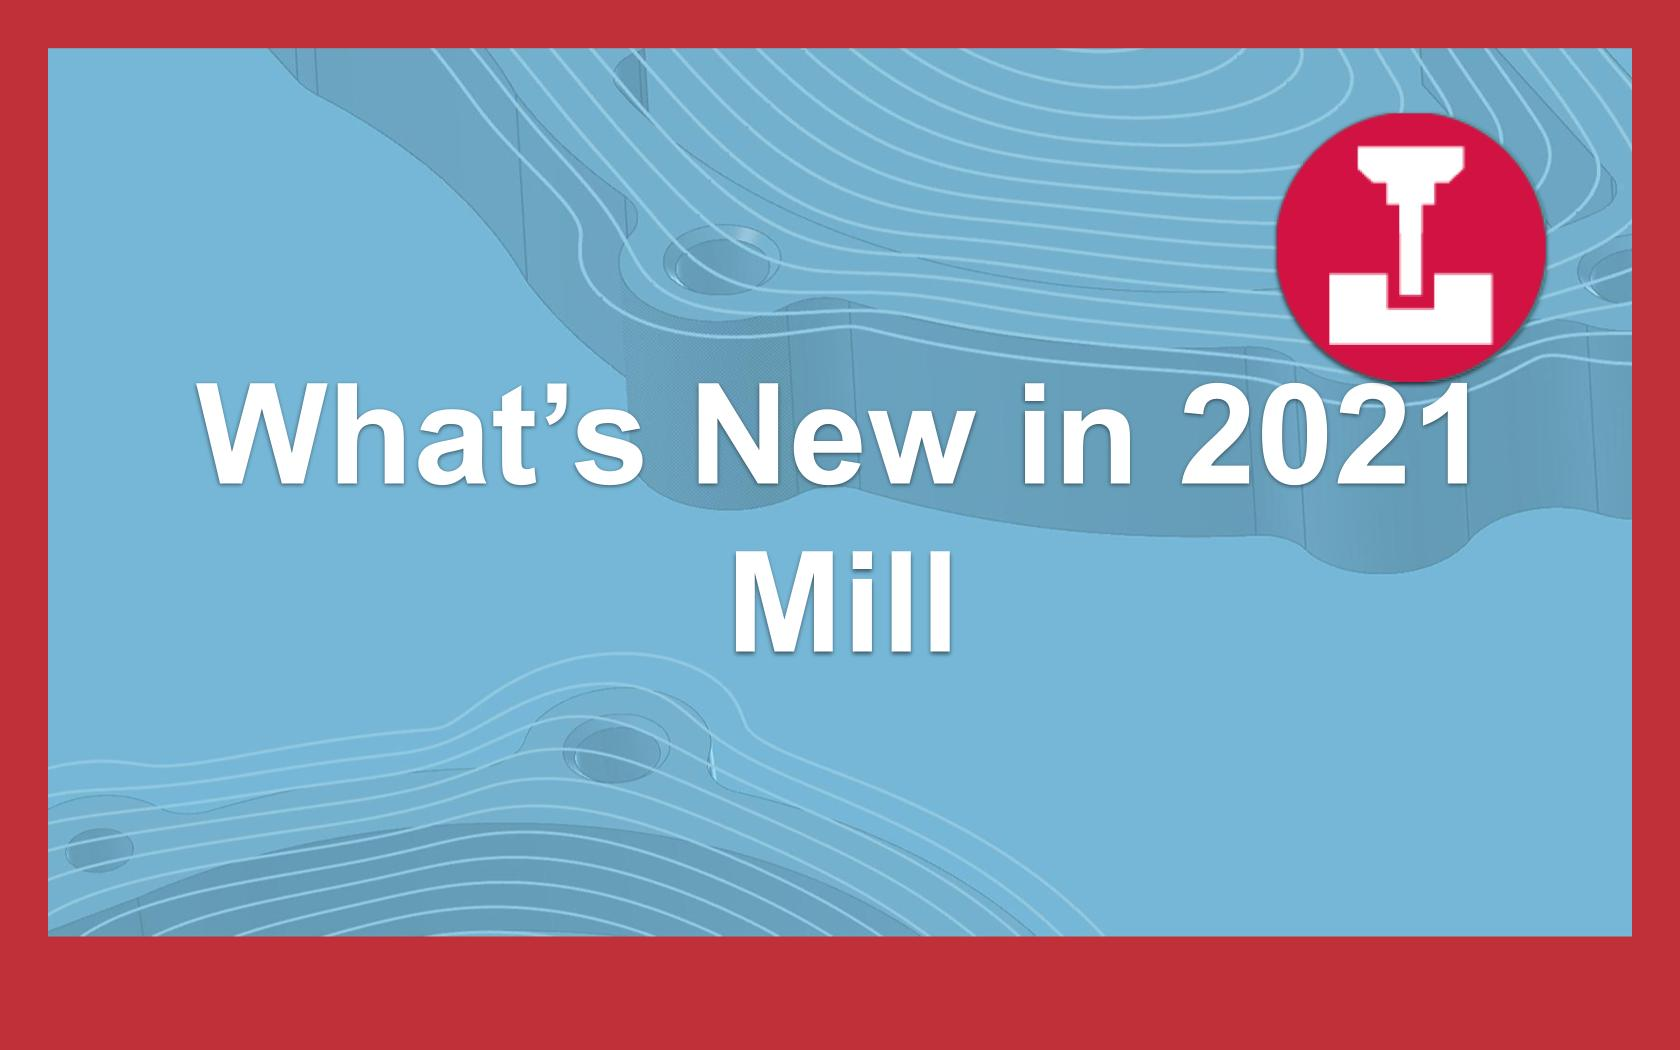 What's New in 2021 - Mill